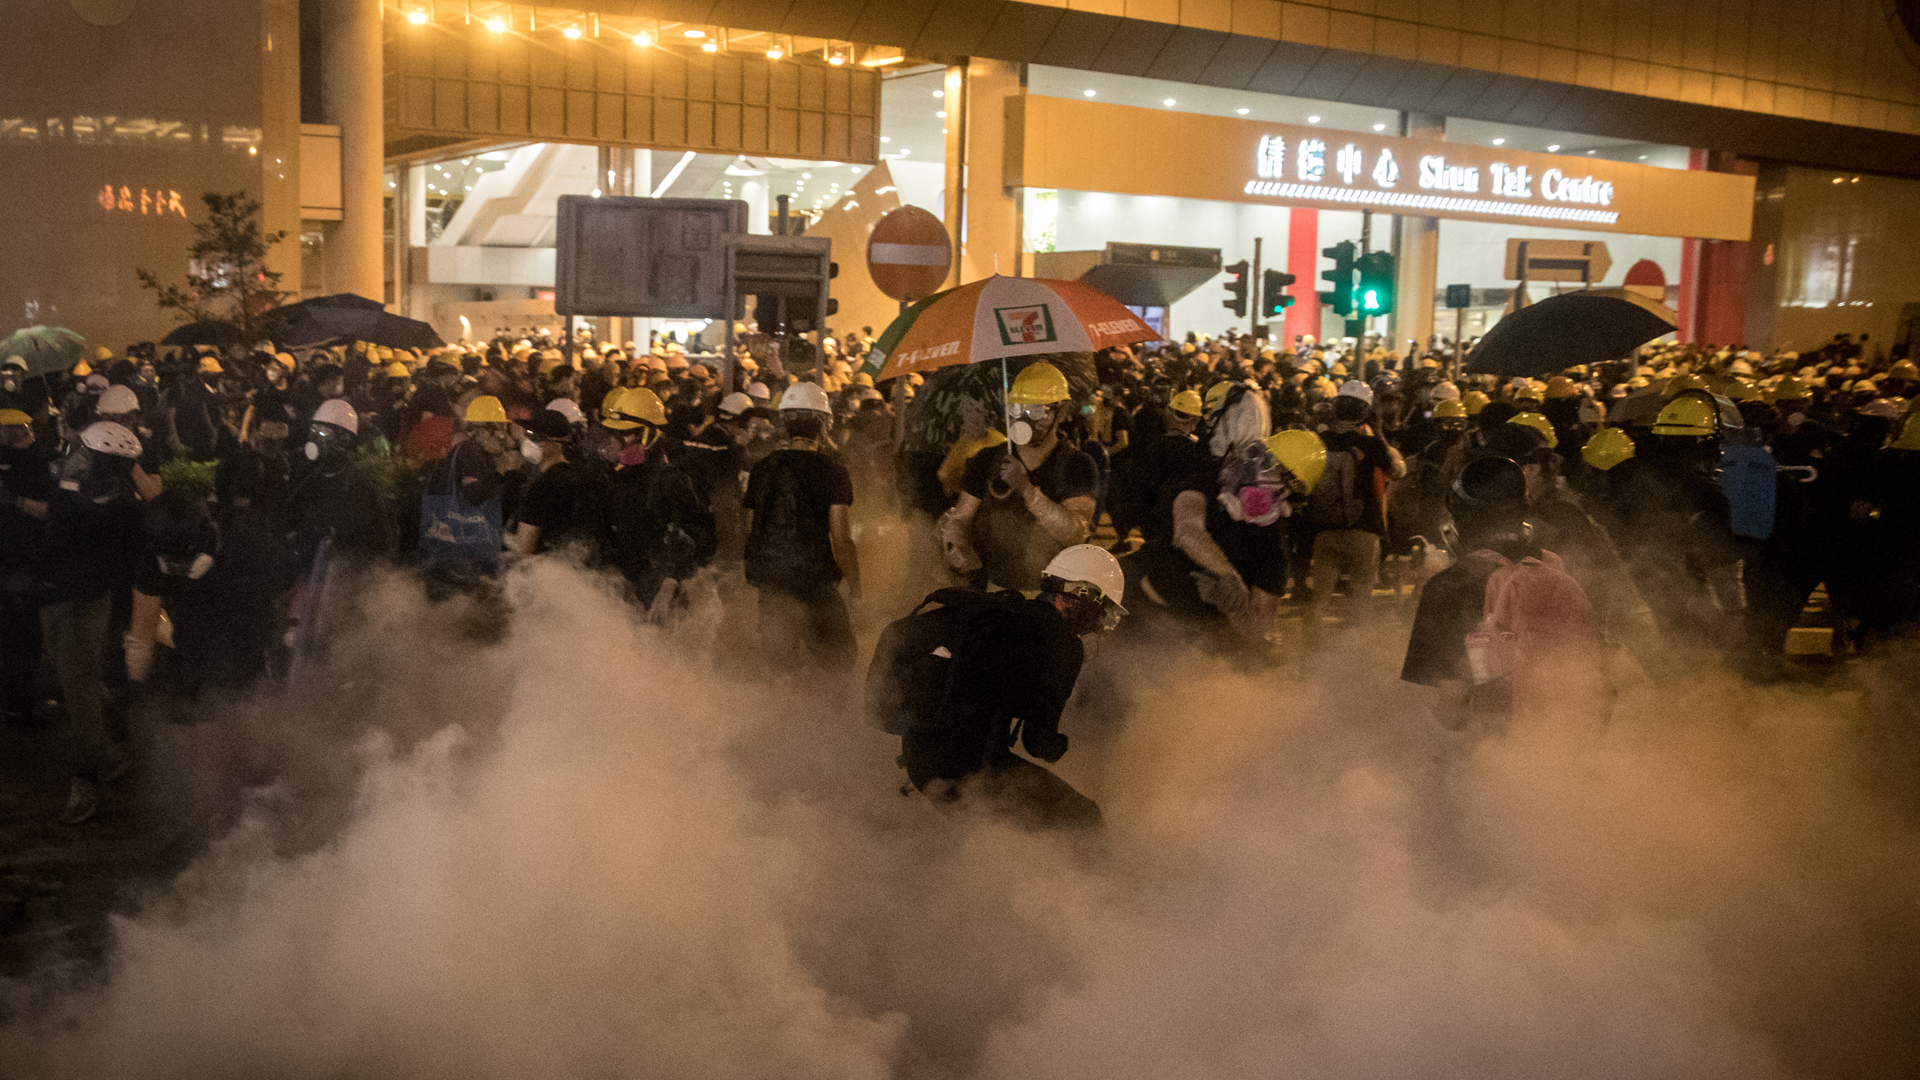 Protesters clash with police after taking part in an anti-extradition bill march on July 21, 2019 in Hong Kong, China. (Credit: Chris McGrath/Getty Images)